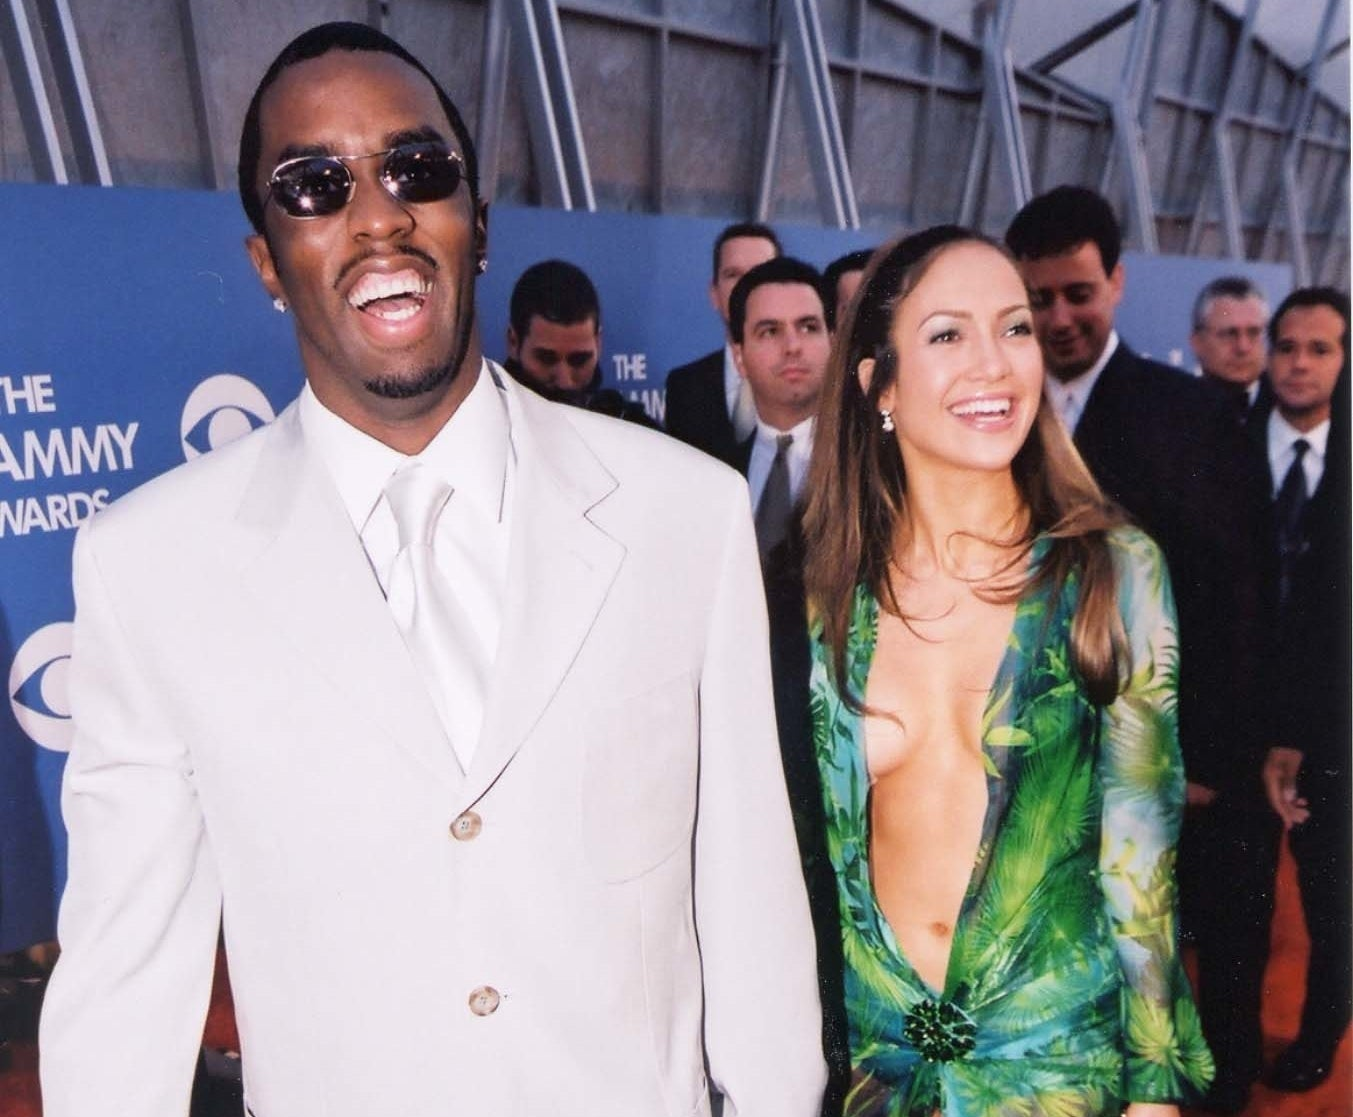 Jennifer and Diddy smile and hold hands while arriving at an award show